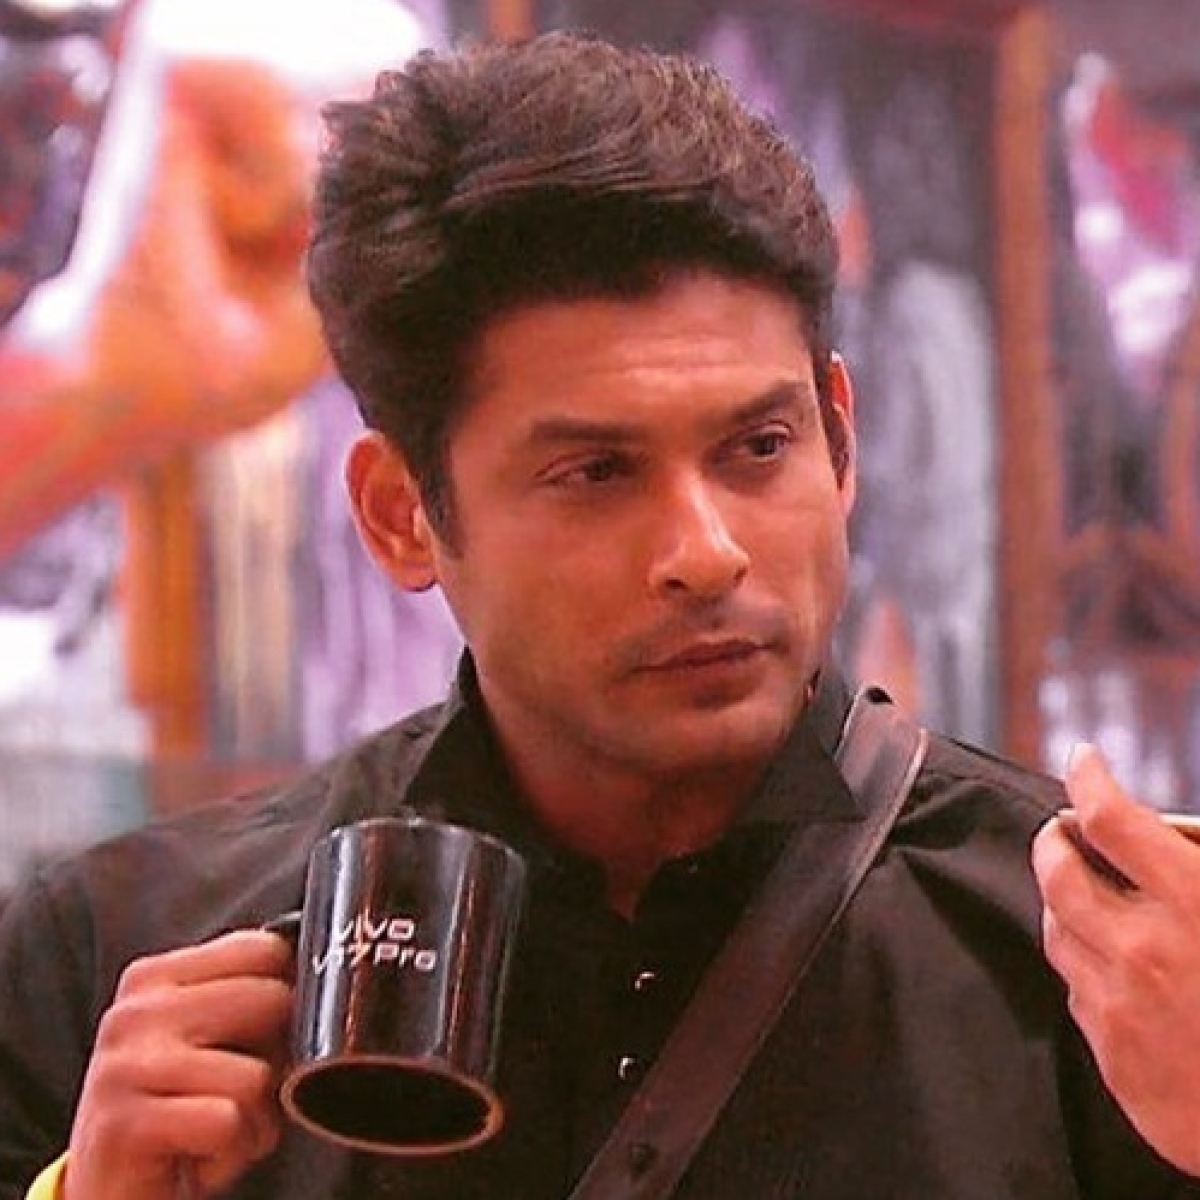 Bigg Boss 13: Sidharth Shukla decides to end his friendship with Shehnaz Gill